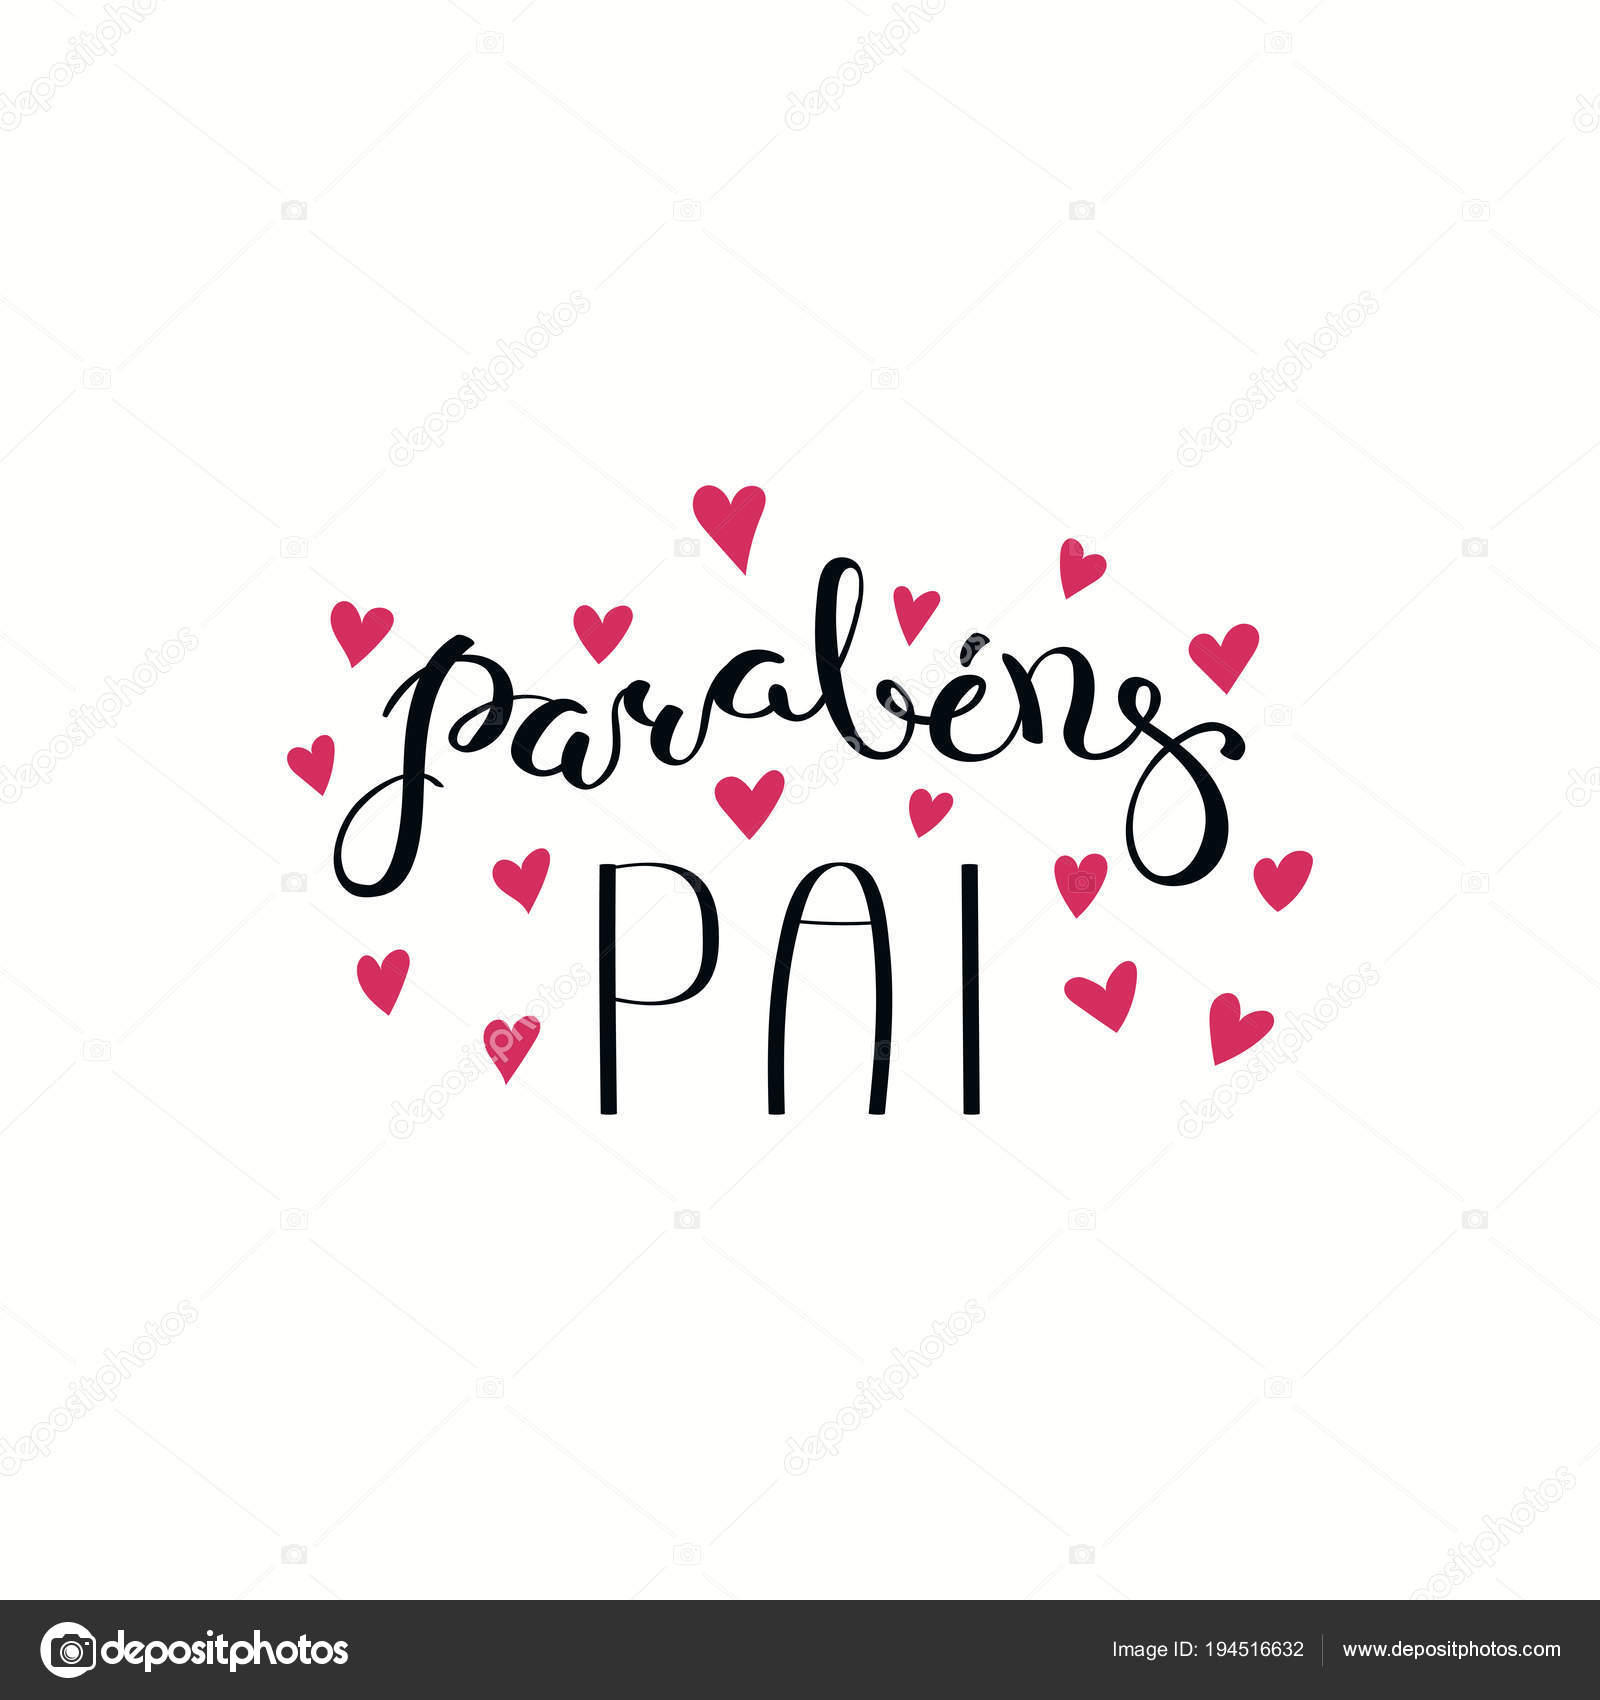 Hand Written Lettering Quote Congratulations Dad Portuguese Parabens Pai Hearts Stock Vector C Maria Skrigan 194516632